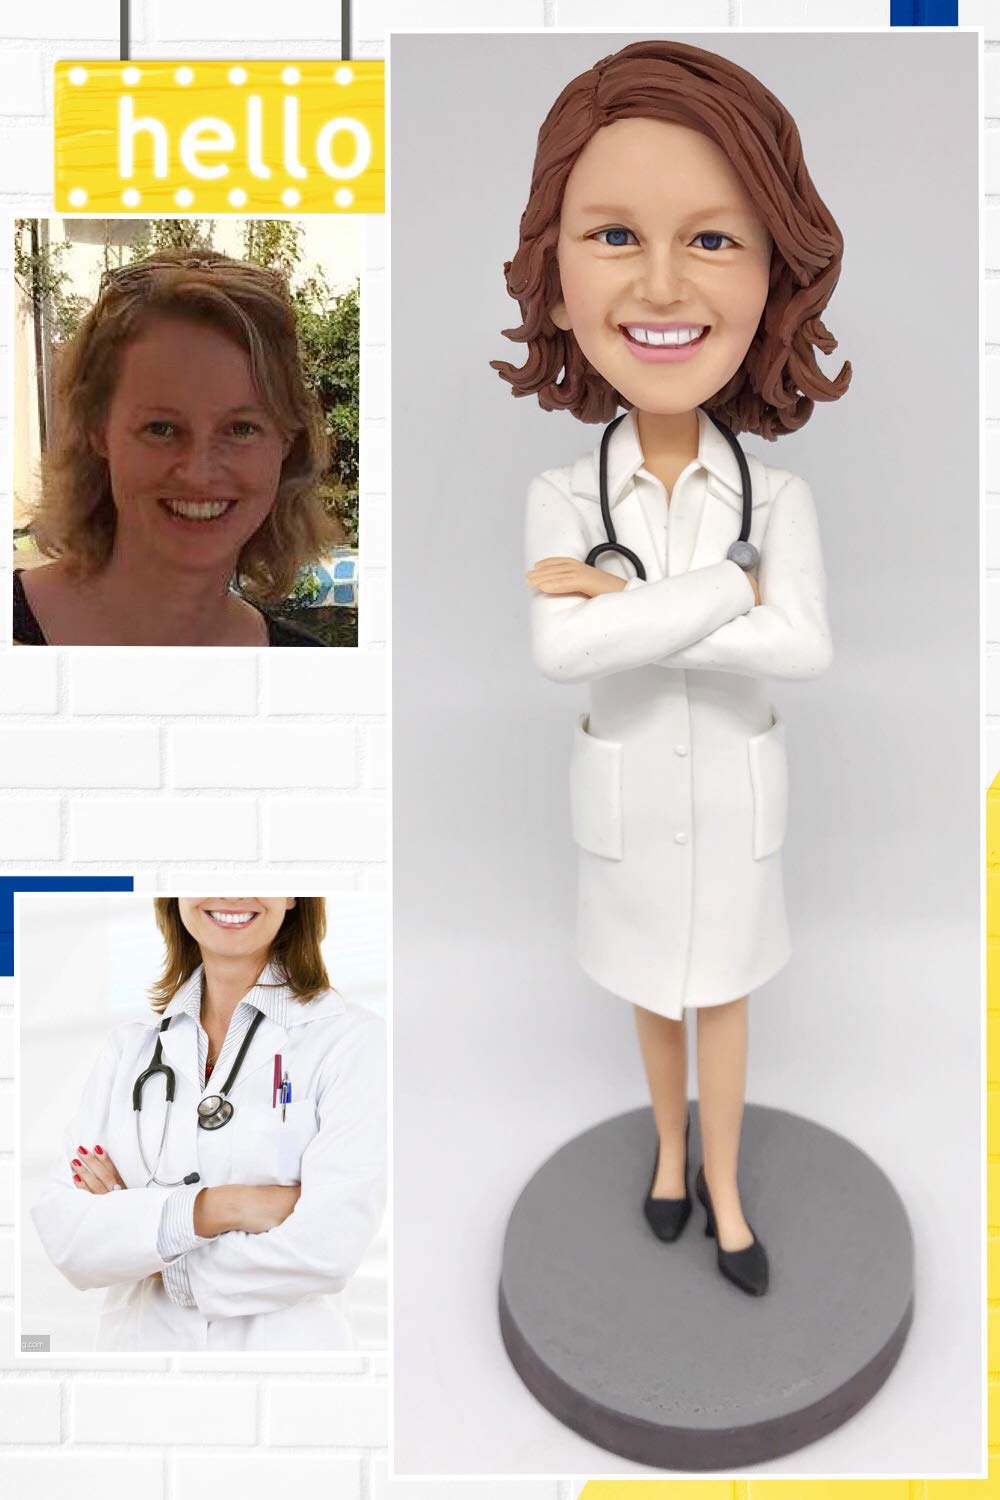 Custom Doctor Bobblehead Figurine Personalized Occupational Gifts Valentines Day Gift Business Gift Father Gift Boyfriend Gift Friends Gifts Based on Your Photos for New Year,DHL Expedited Shipping